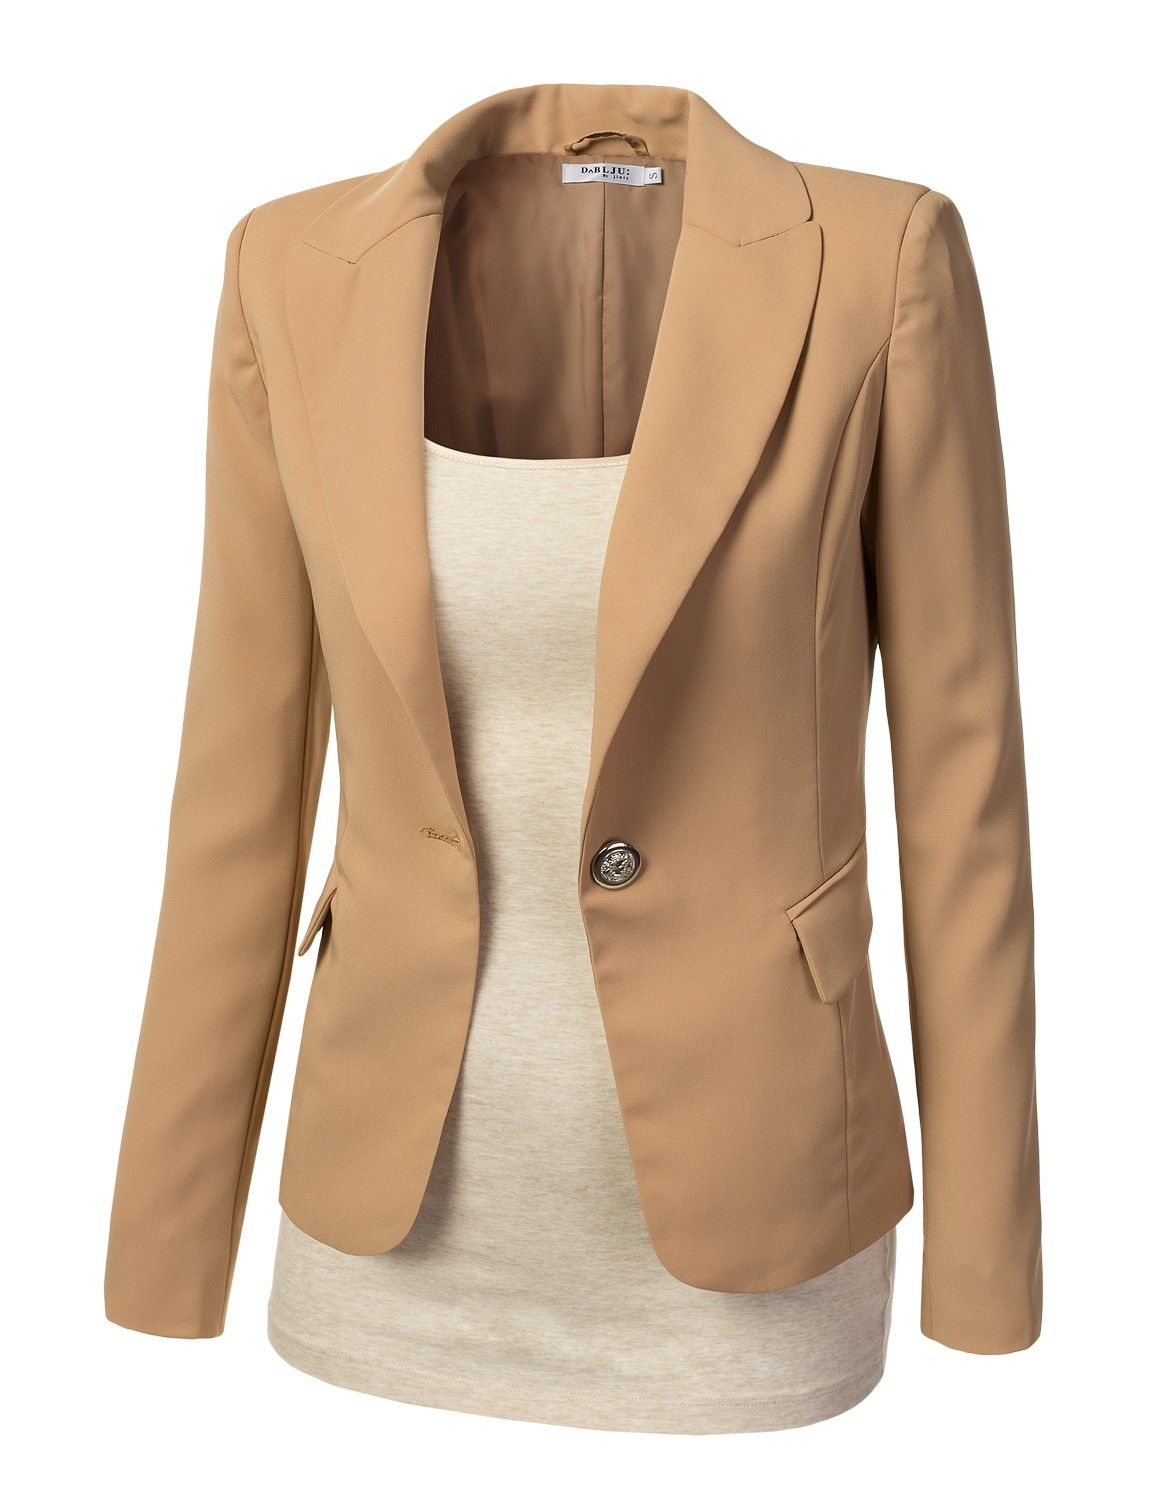 awobl06-beige-1-womens-fitted-blazer-jacket.jpg (1154×1500 ...